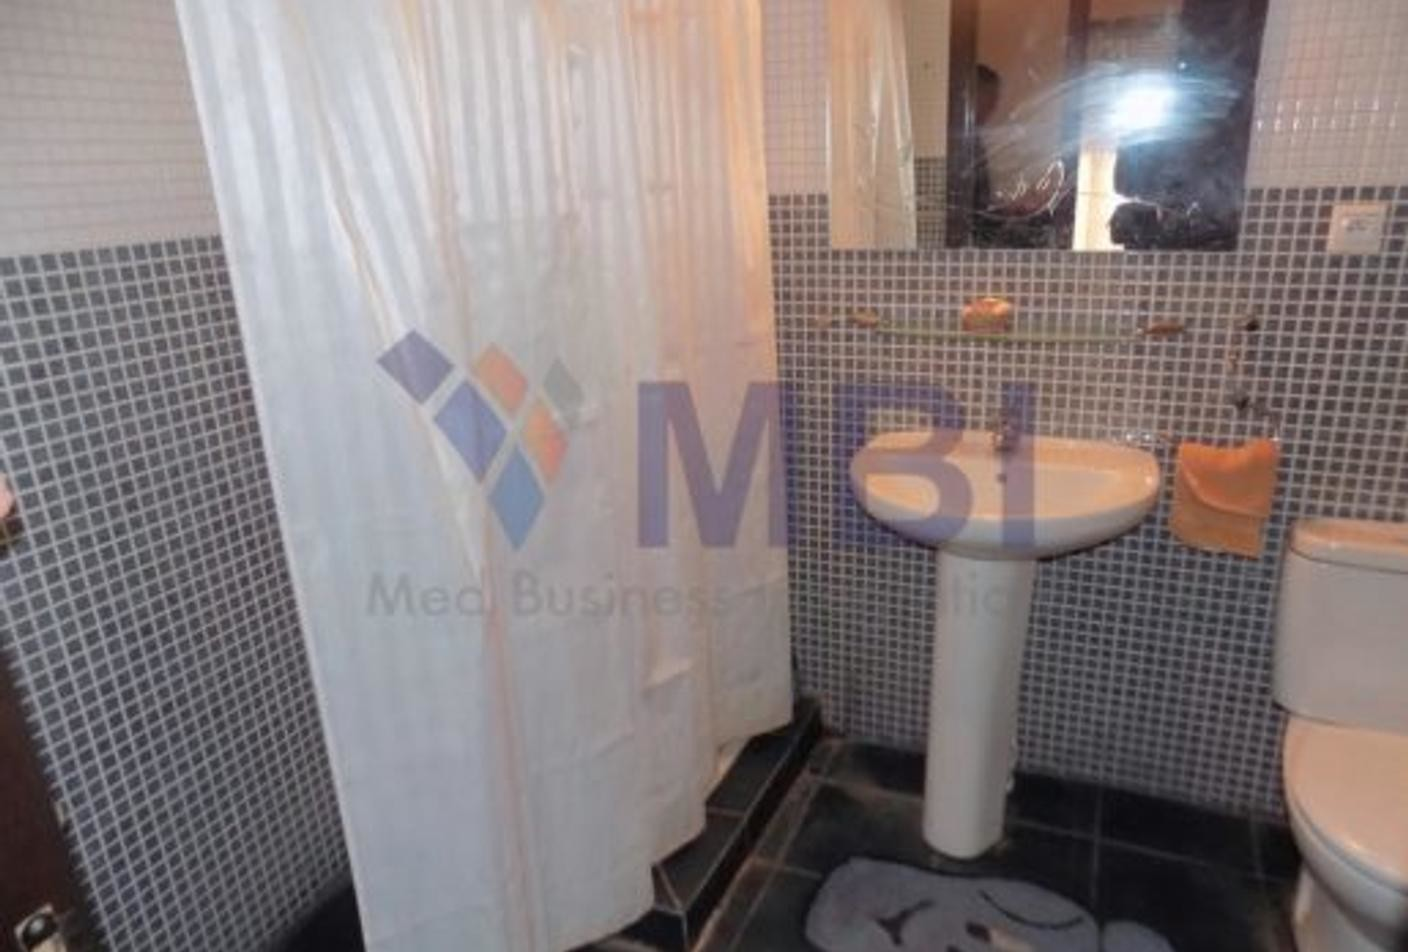 Vente <strong>Appartement</strong> Marrakech indéfini <strong>93 m2</strong>